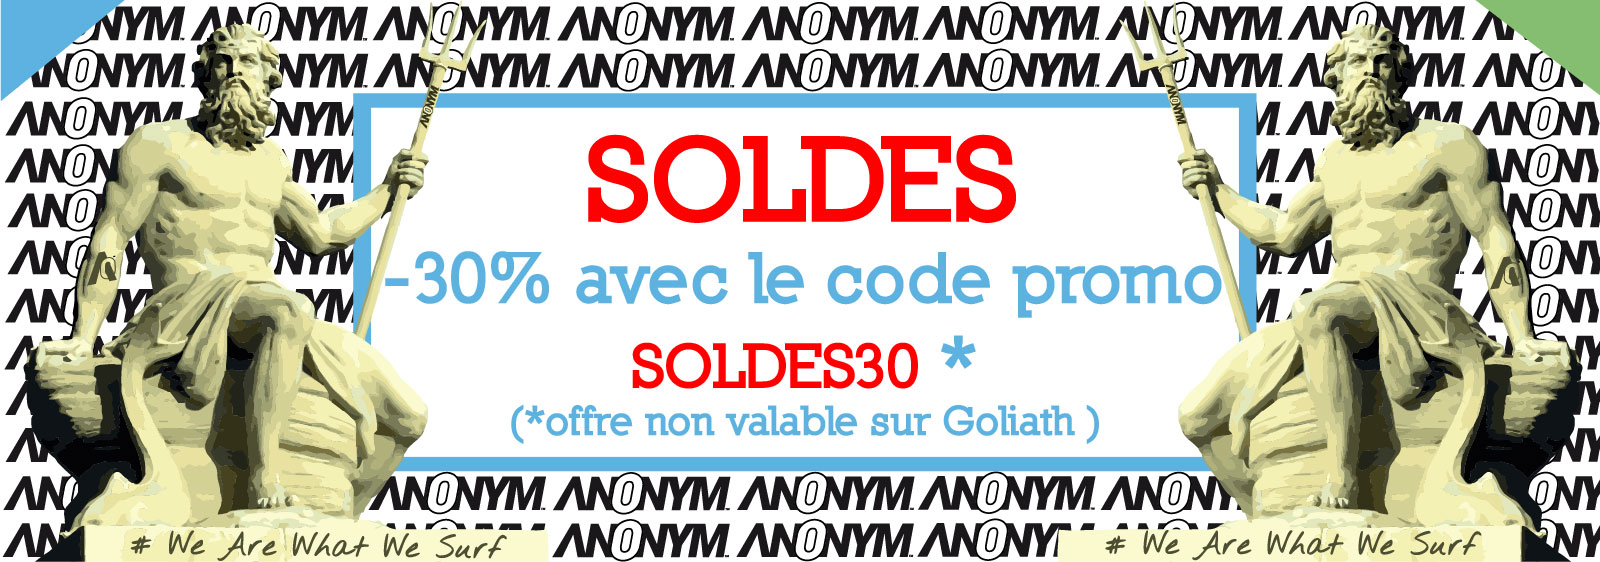 paddle-gonflable-pas-cher-solde-anonym-sup